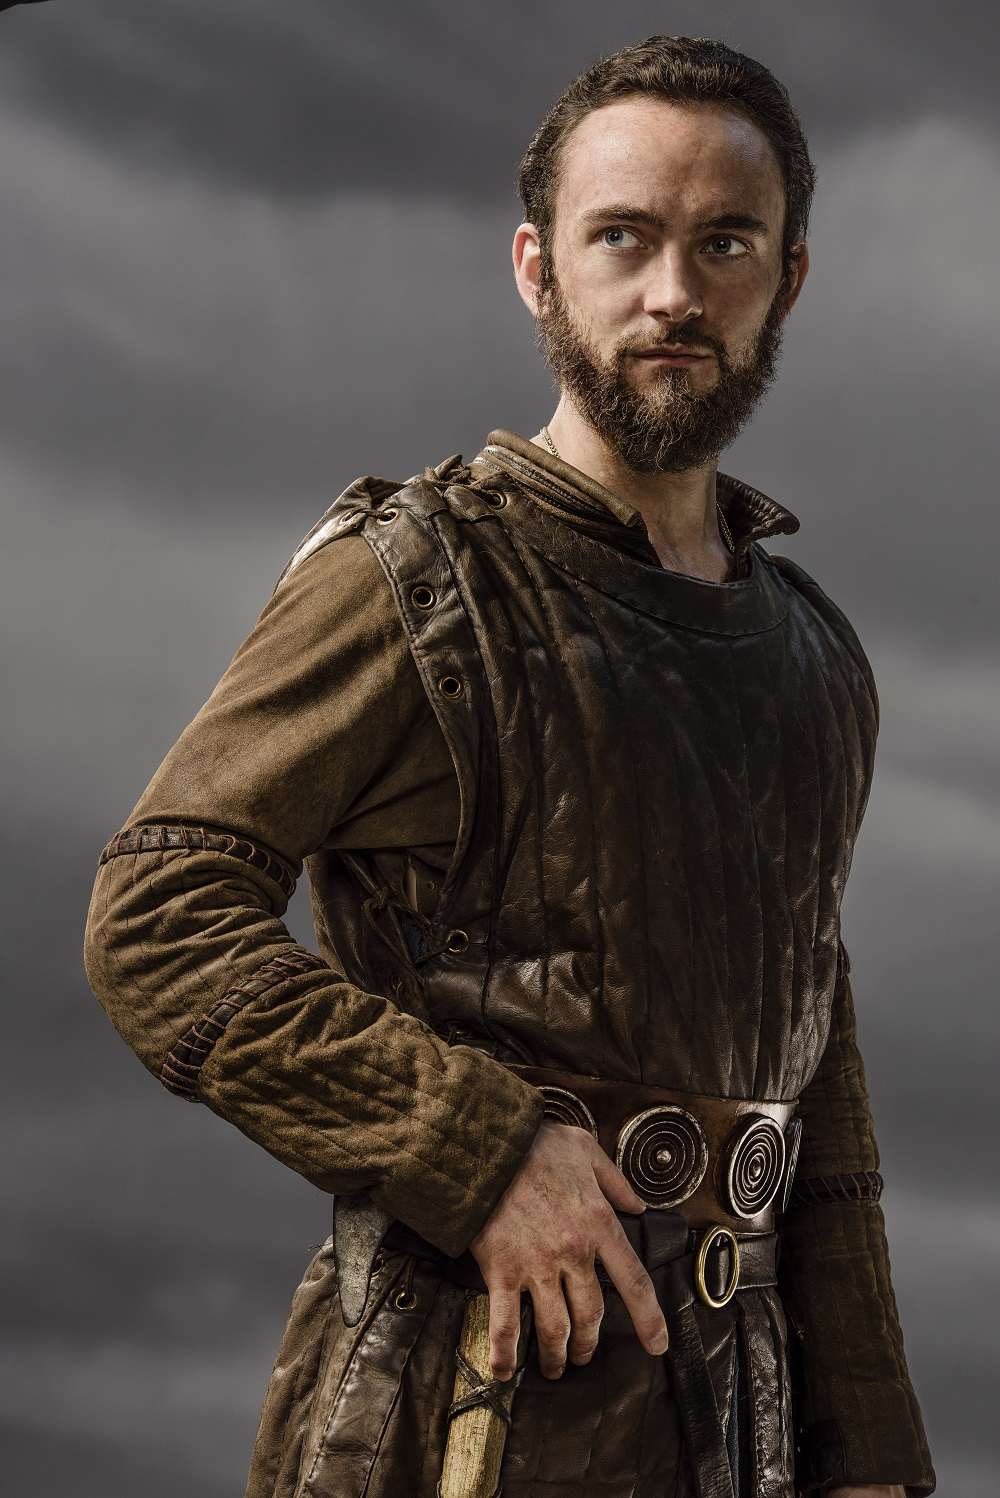 55a348b83415e Athelstan | Vikings Wiki | FANDOM powered by Wikia